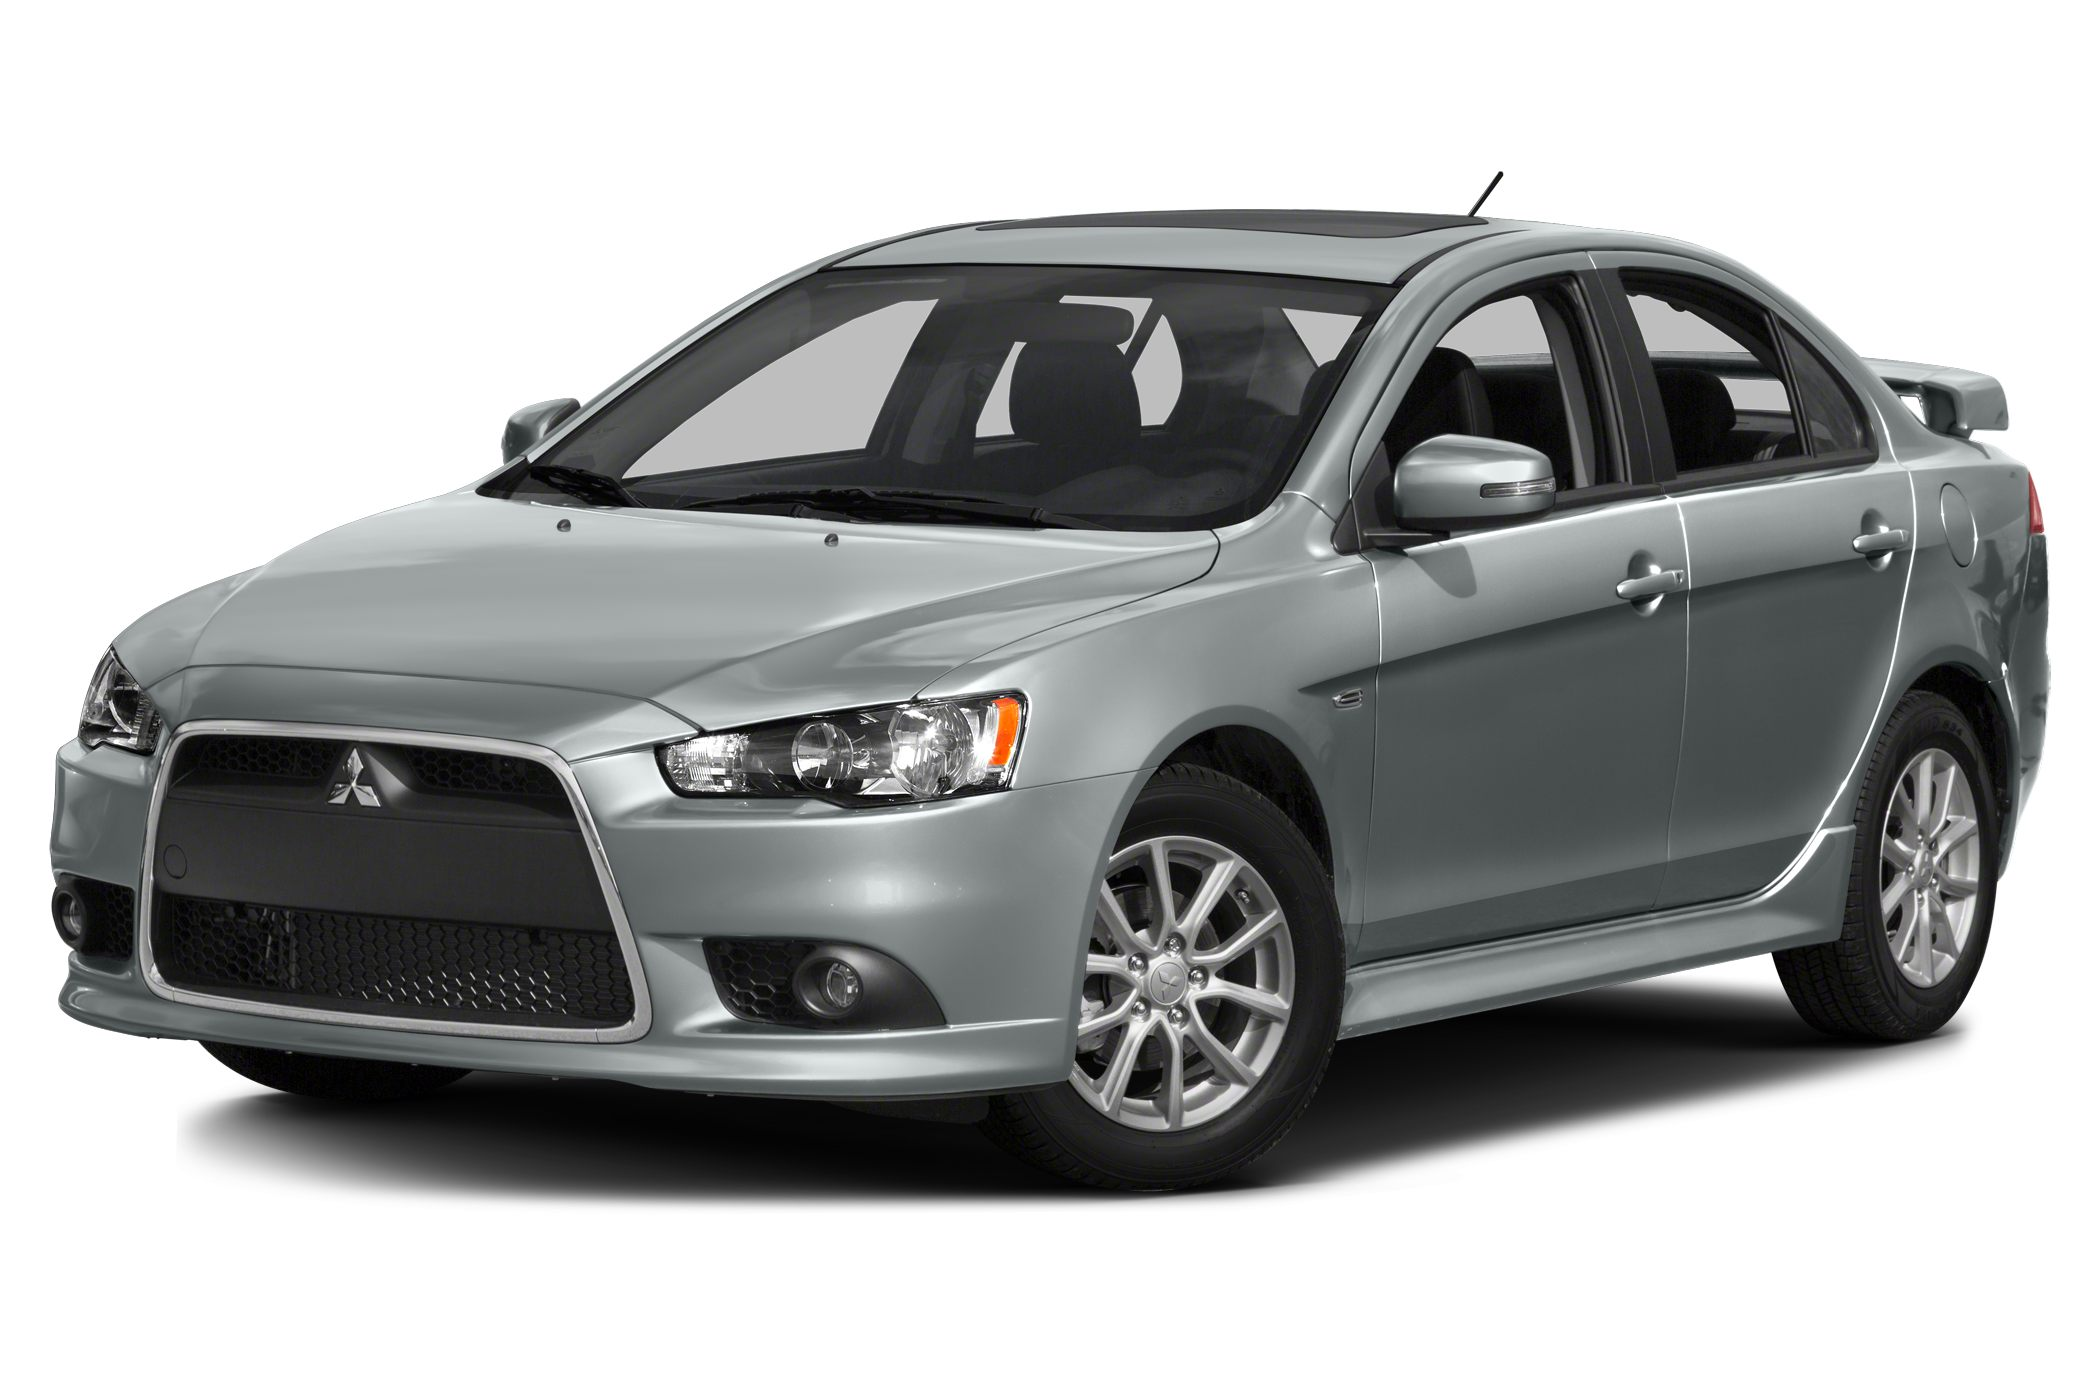 2015 Mitsubishi Lancer ES Black CARFAX One-Owner Recent Arrival 3426 HighwayCity MPG 2015 Mits